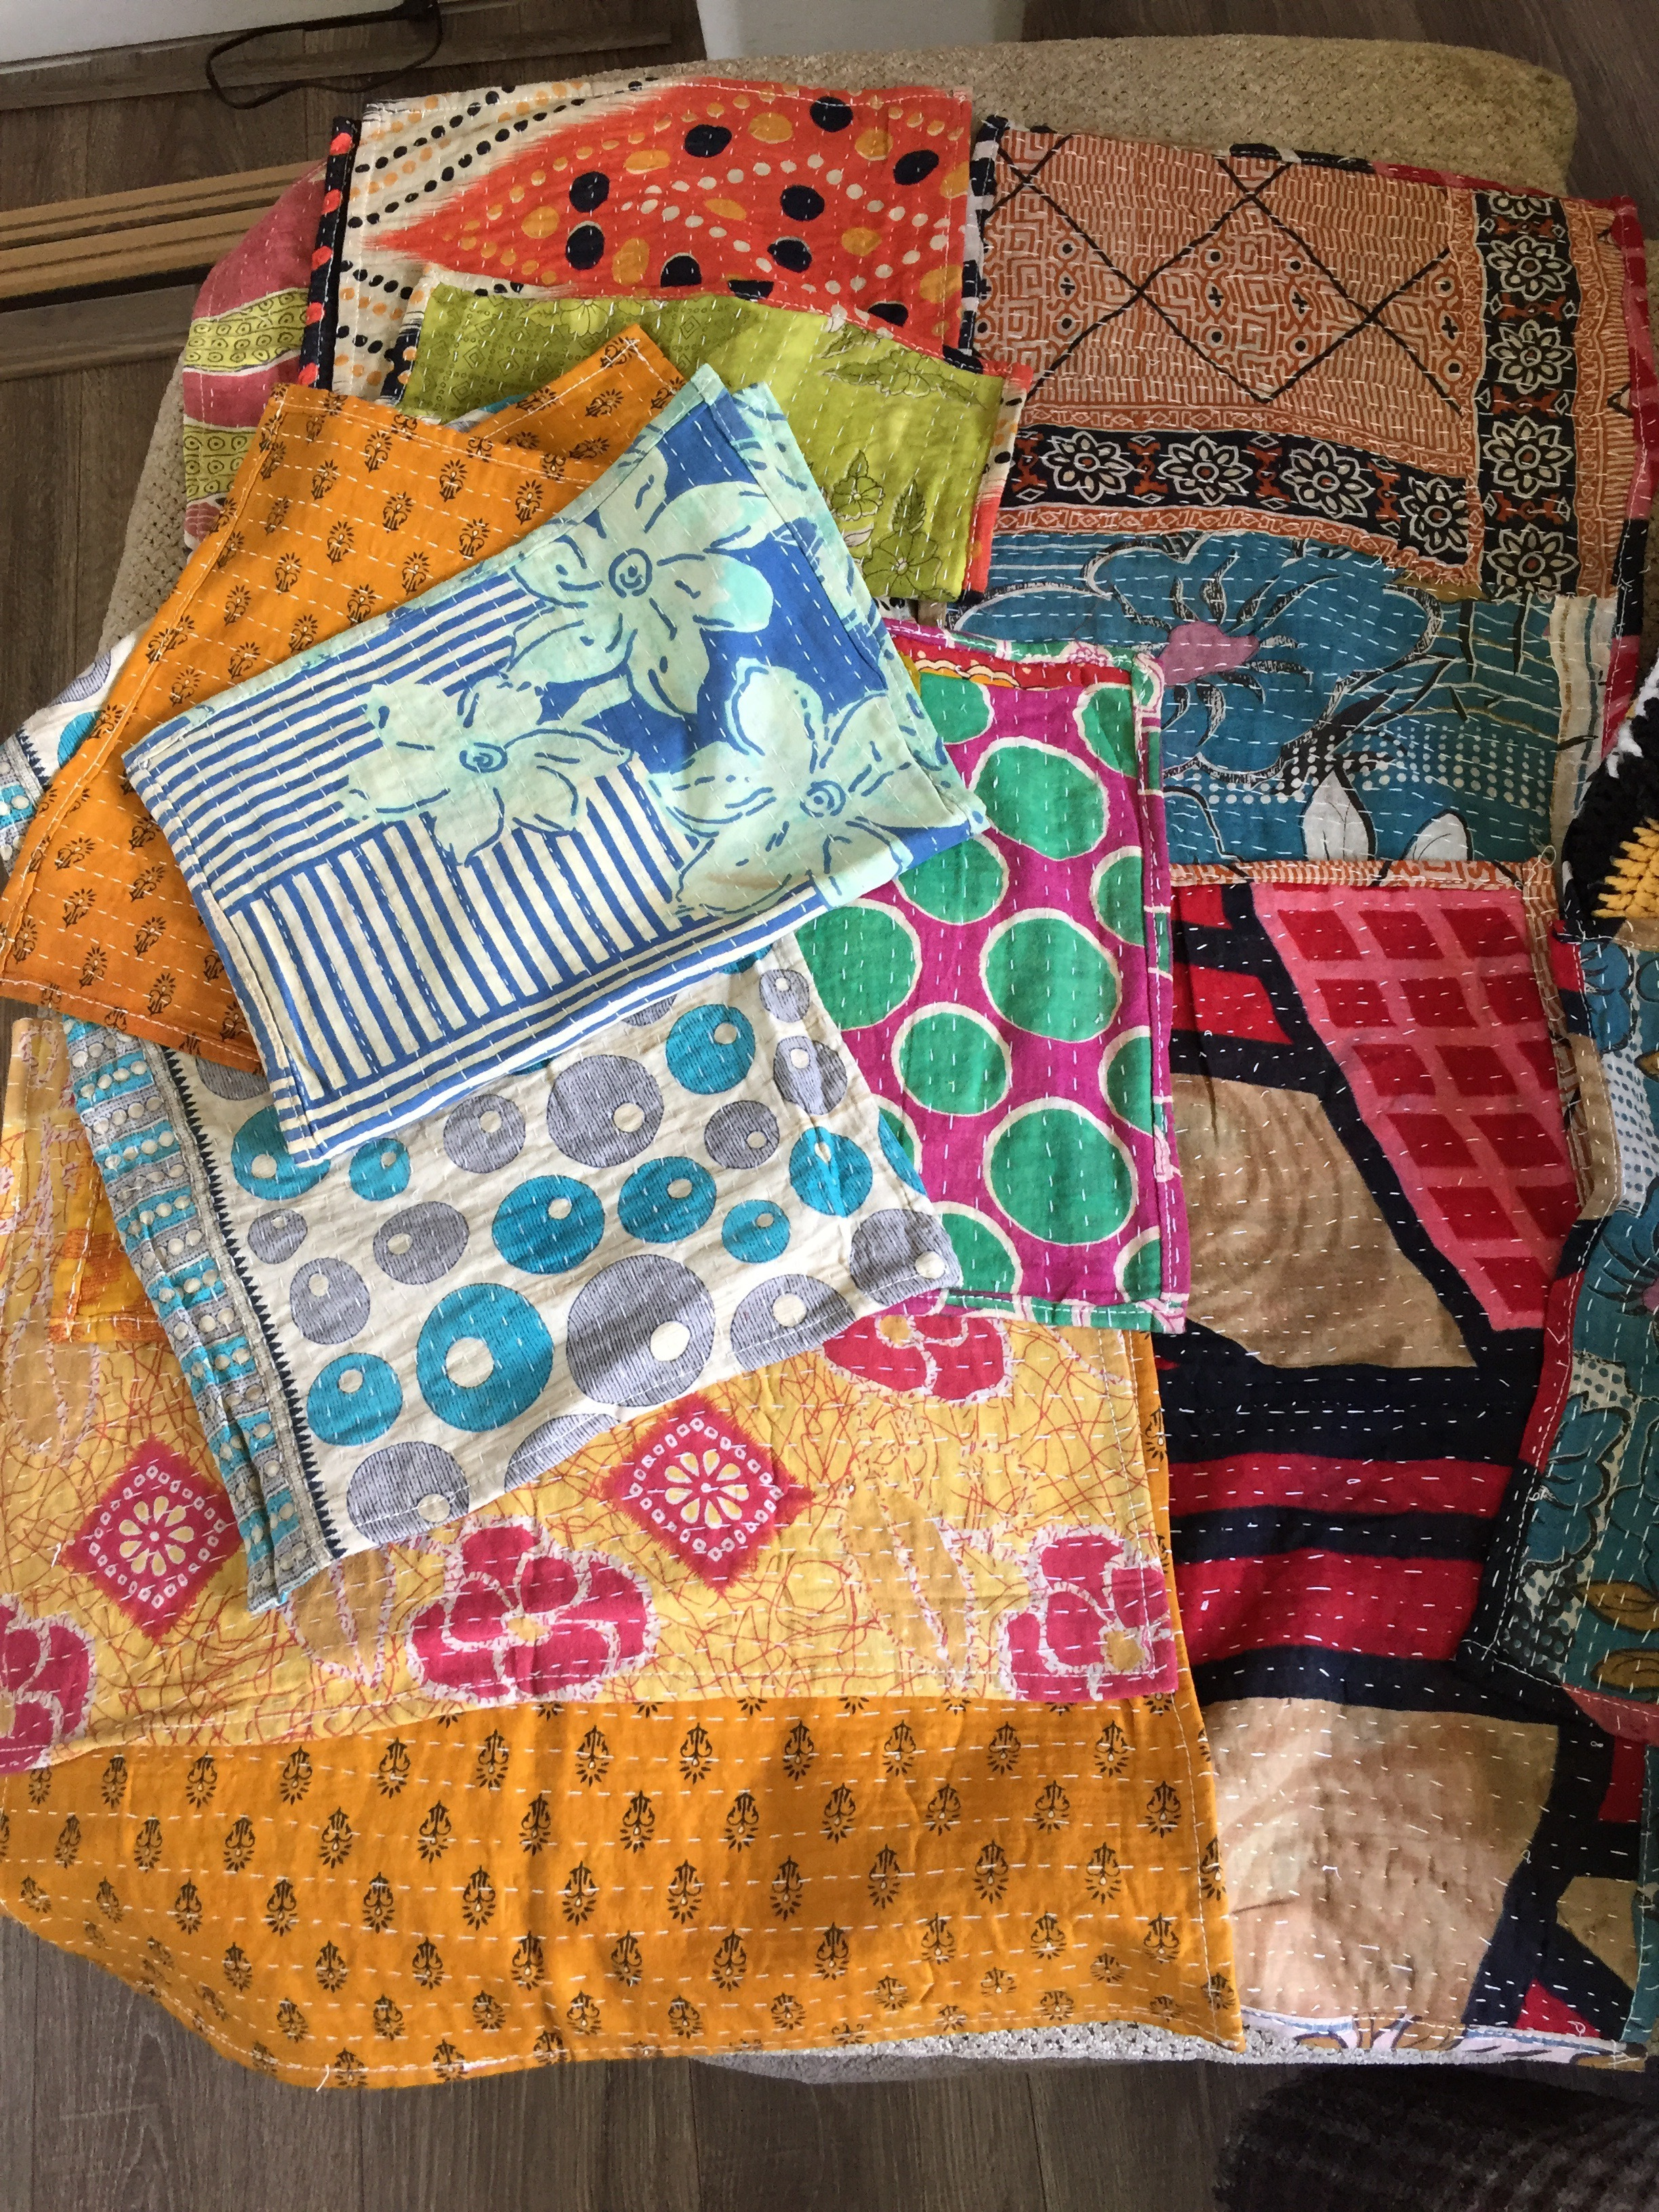 Restocked colorful Kantha placemats! These are a consistent seller on Etsy and I have given some sets out recently as gifts and they are loved! I have 3 sets (of 4) available and listed on Etsy.